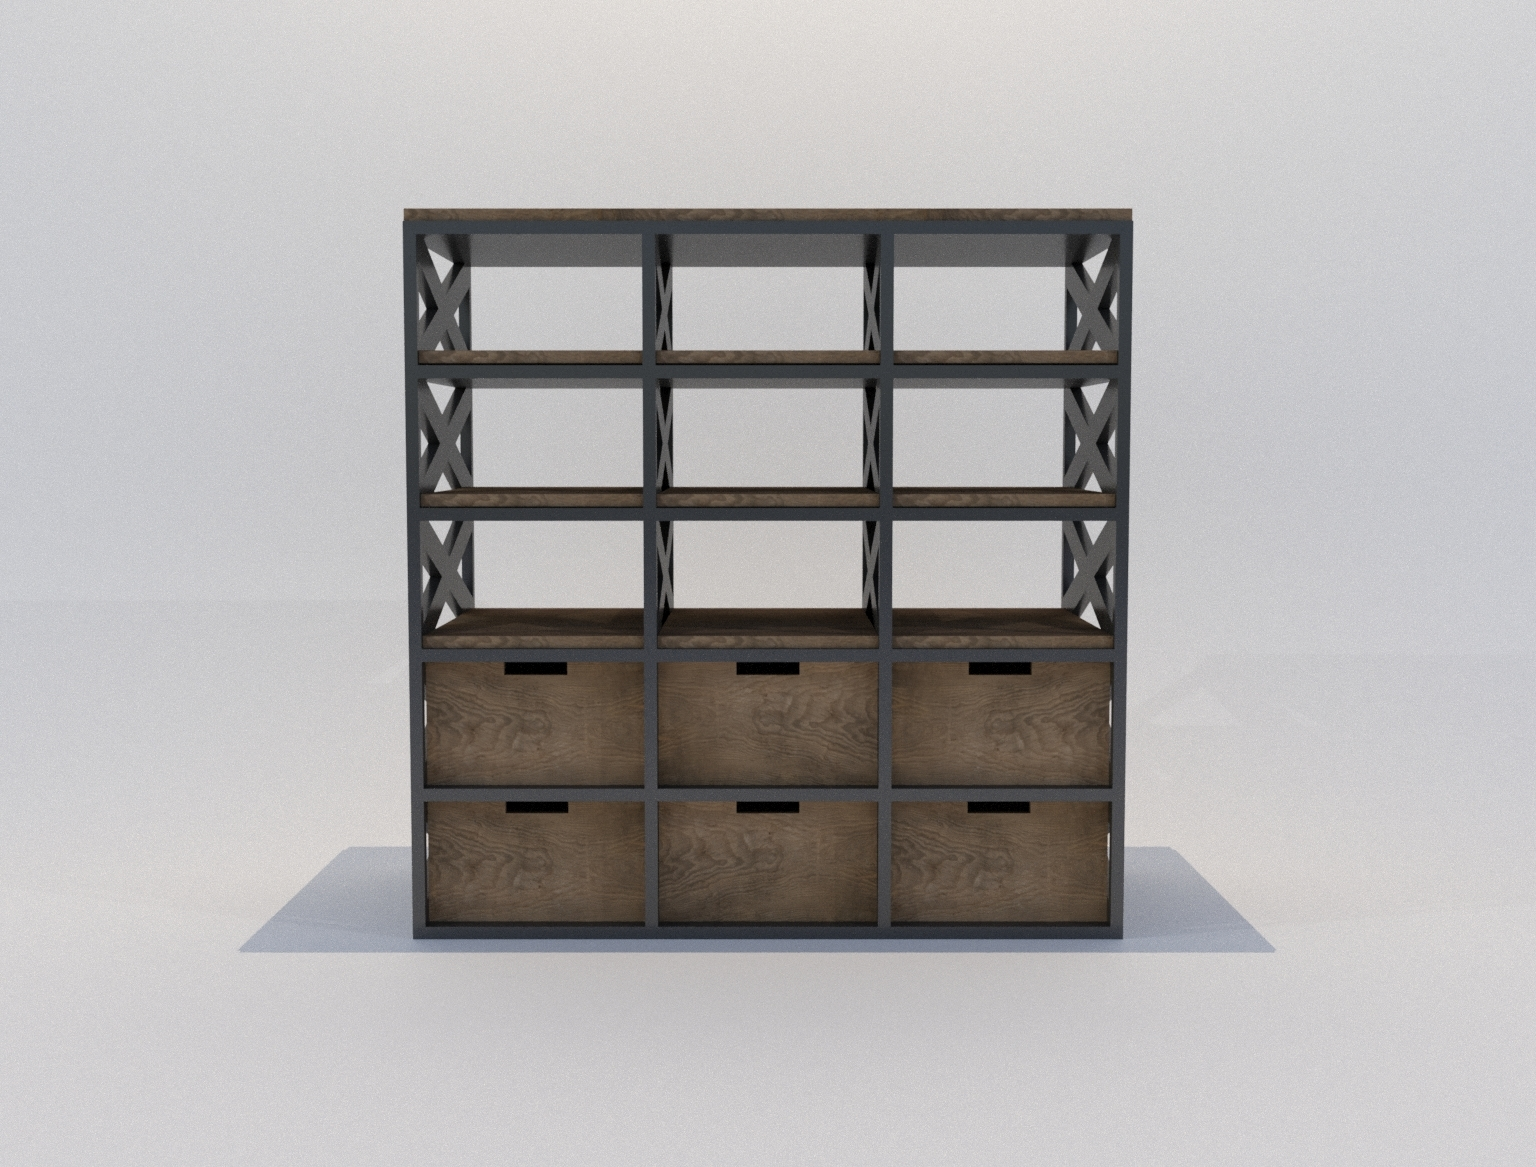 Industrial Bookshelf With Rustic Wooden Shelves And Boxes